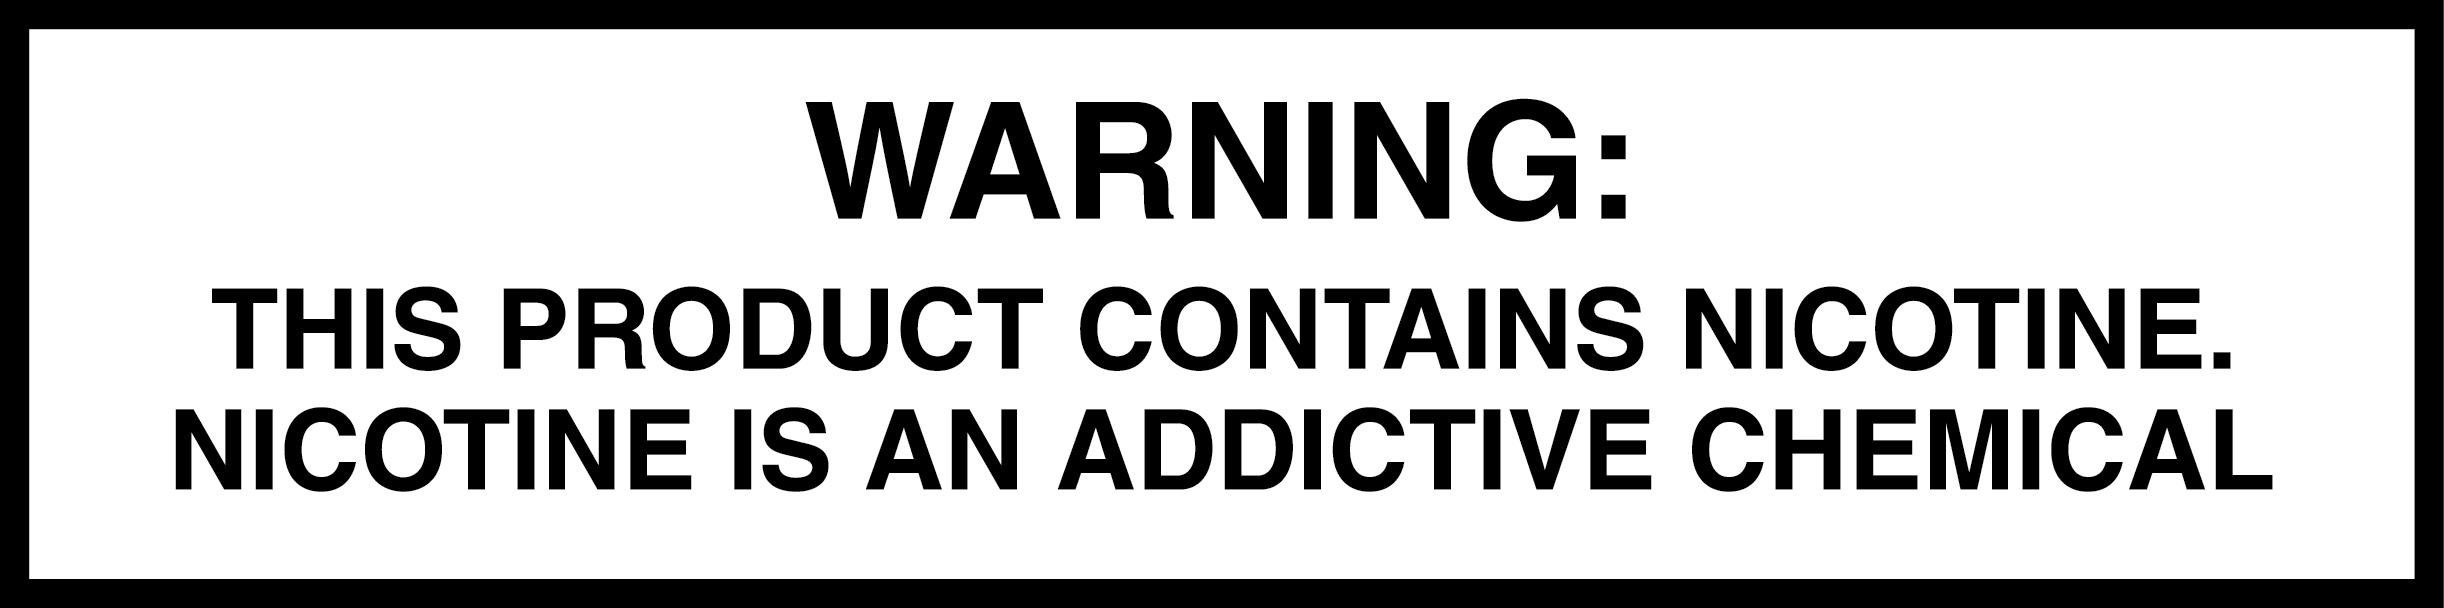 image-753359-nicotine-fda-warning.png